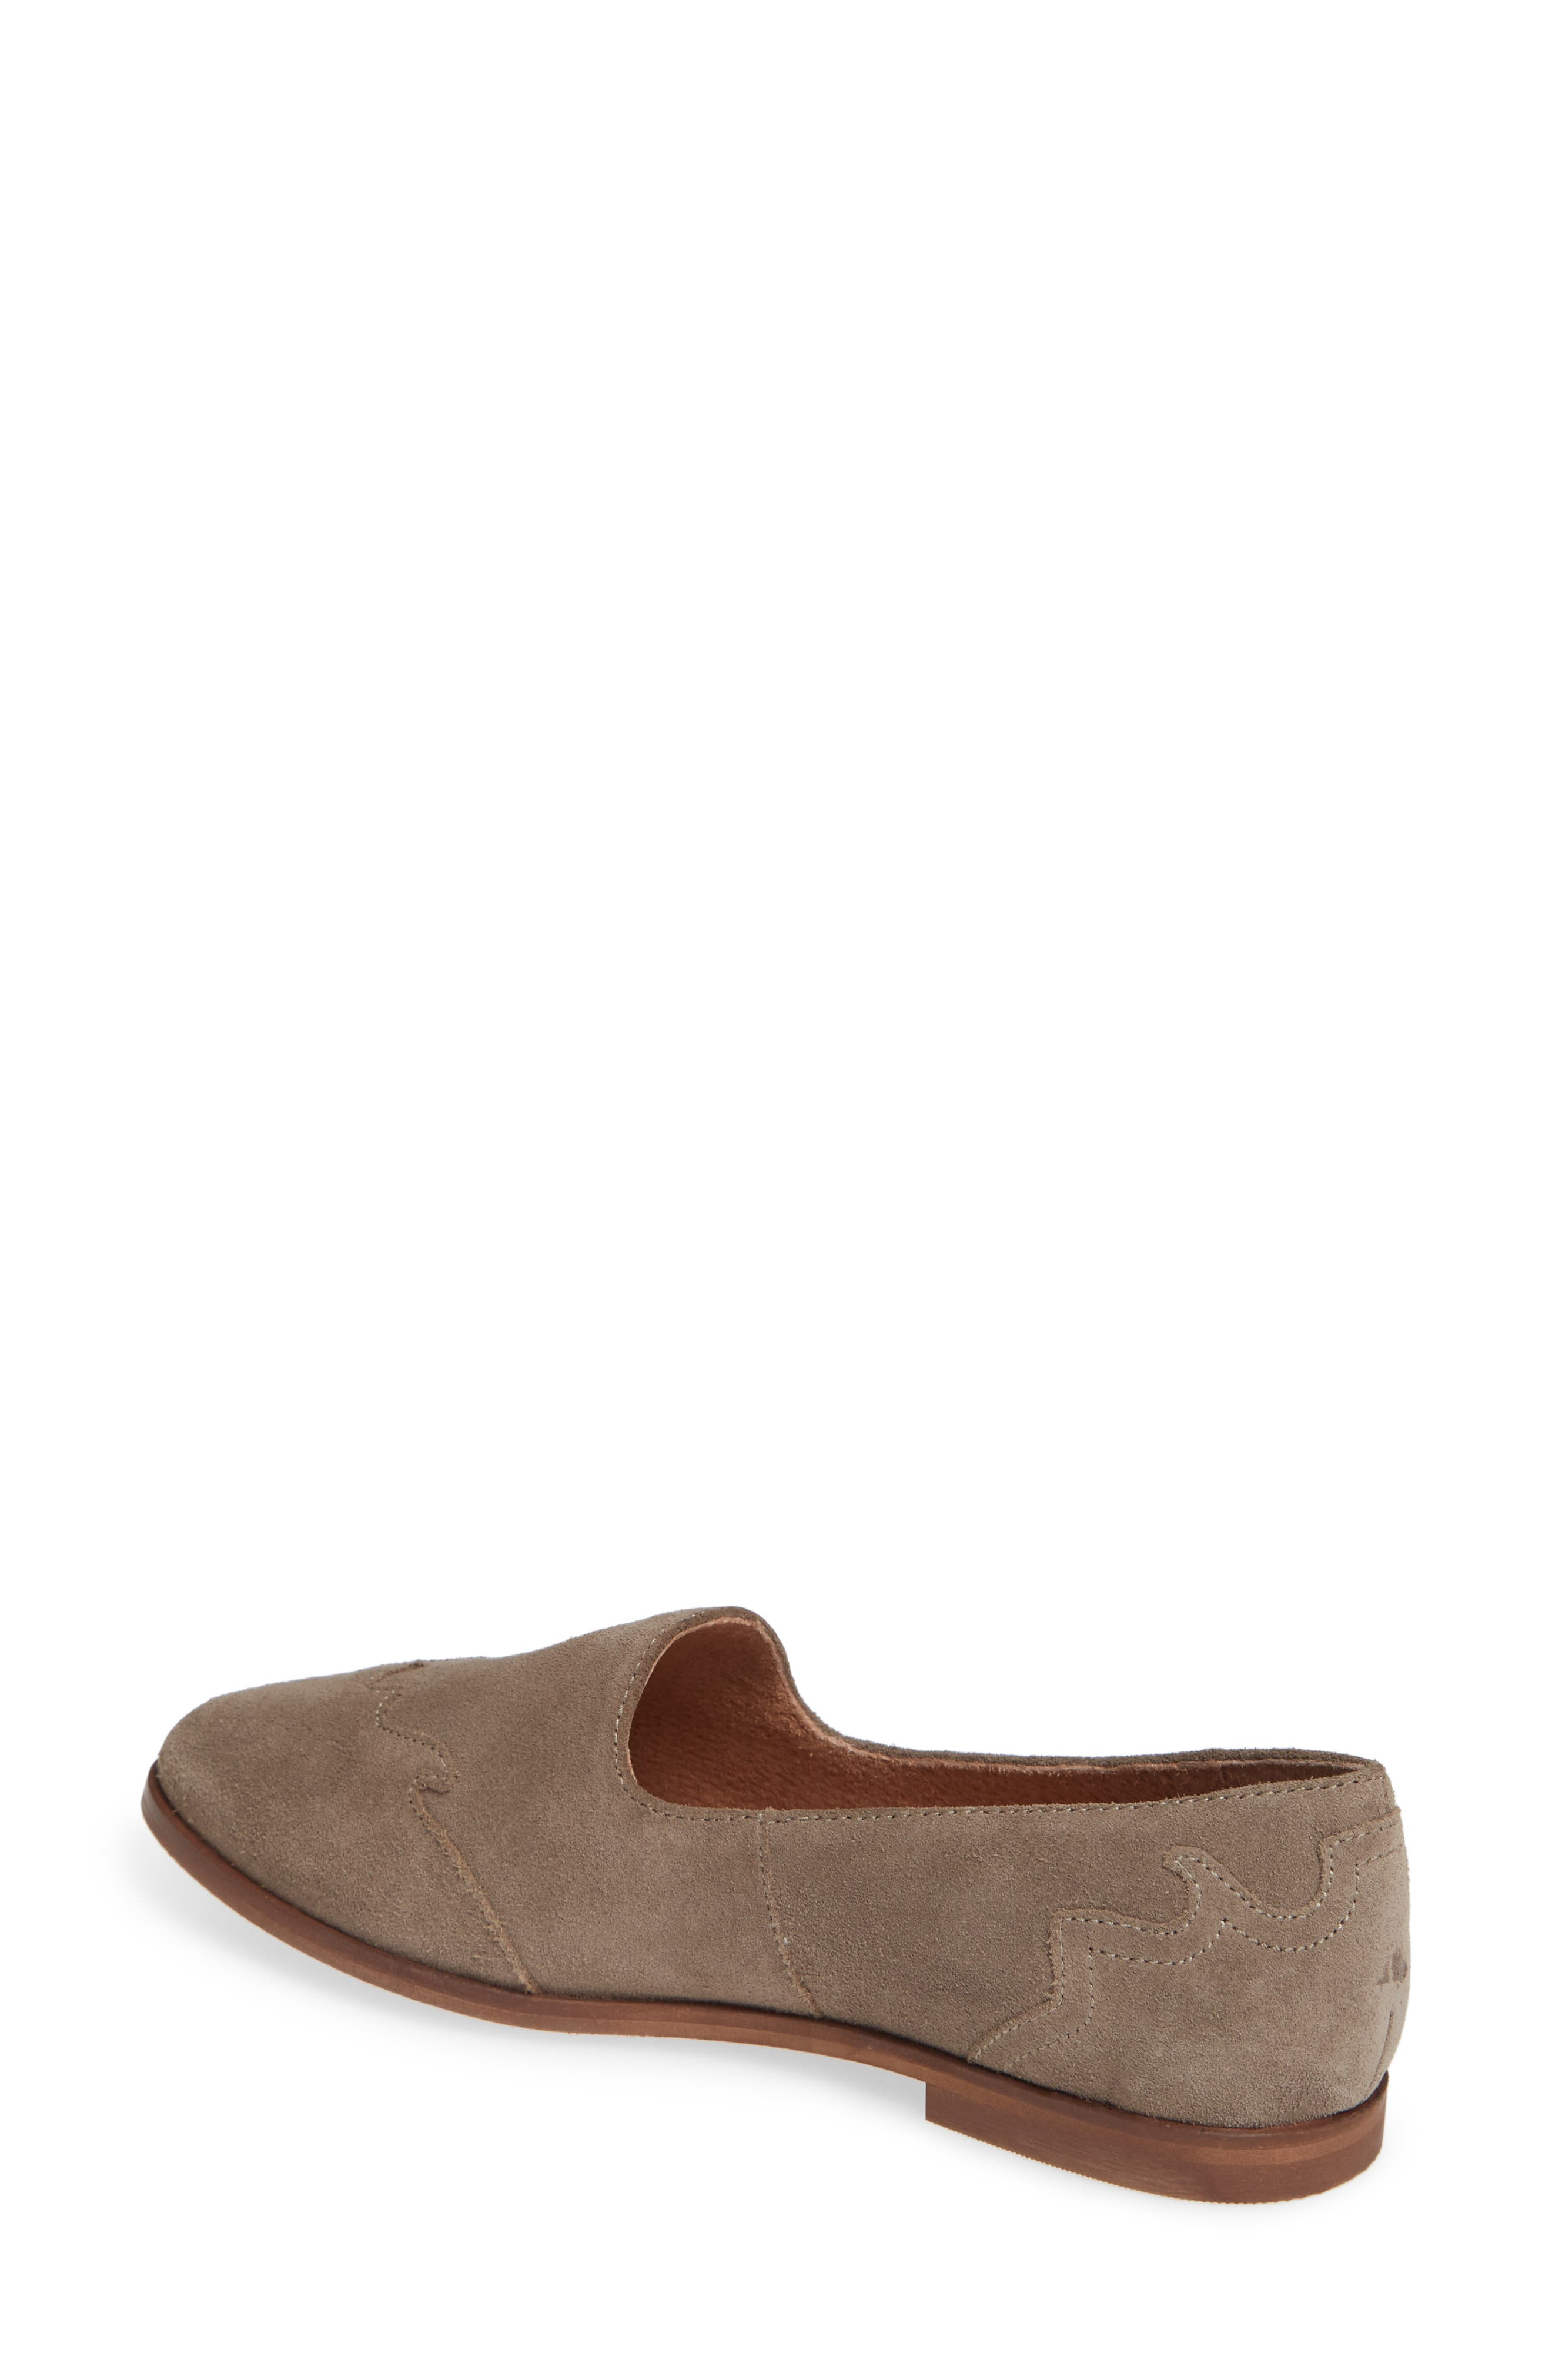 Revolution Loafer,                             Alternate thumbnail 2, color,                             TAUPE SUEDE